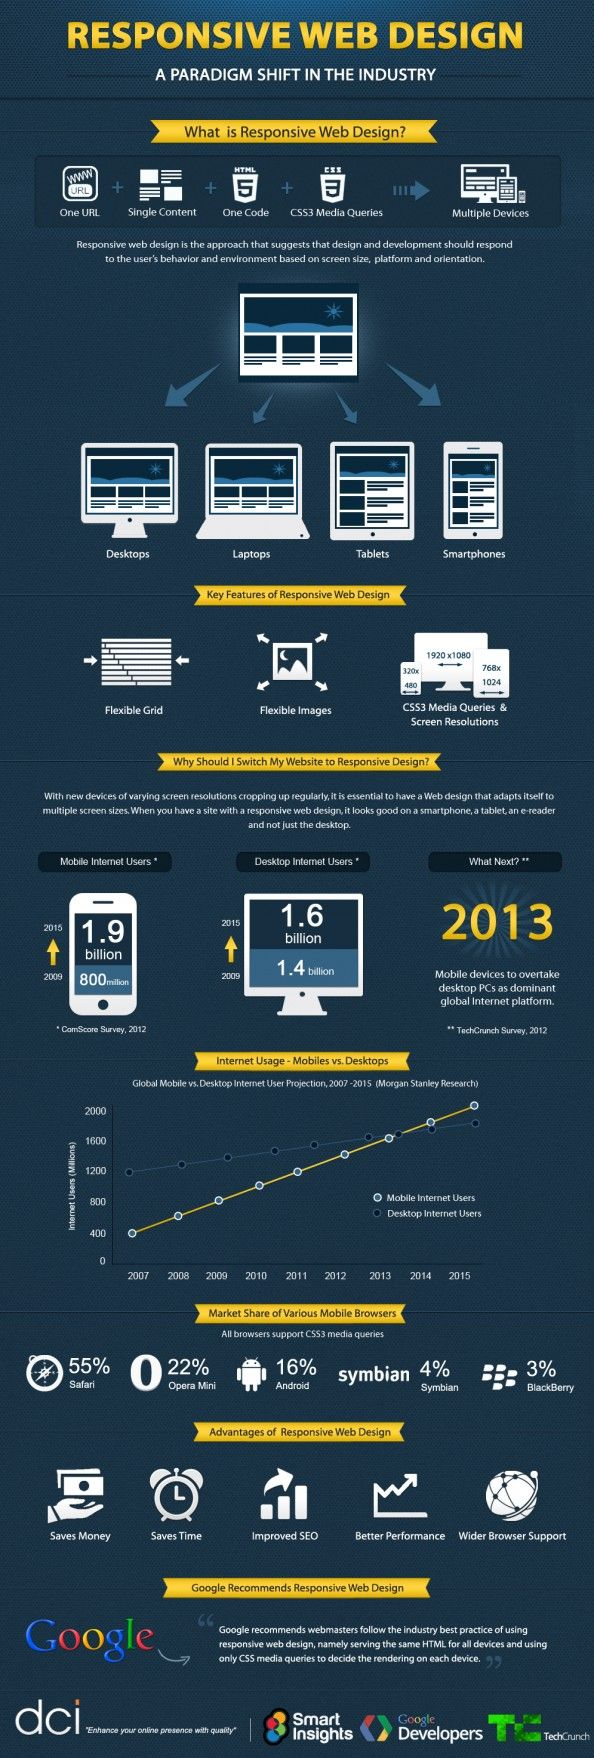 [infographic] Responsive Web Design: A Paradigm Shift in the Industry #RWD